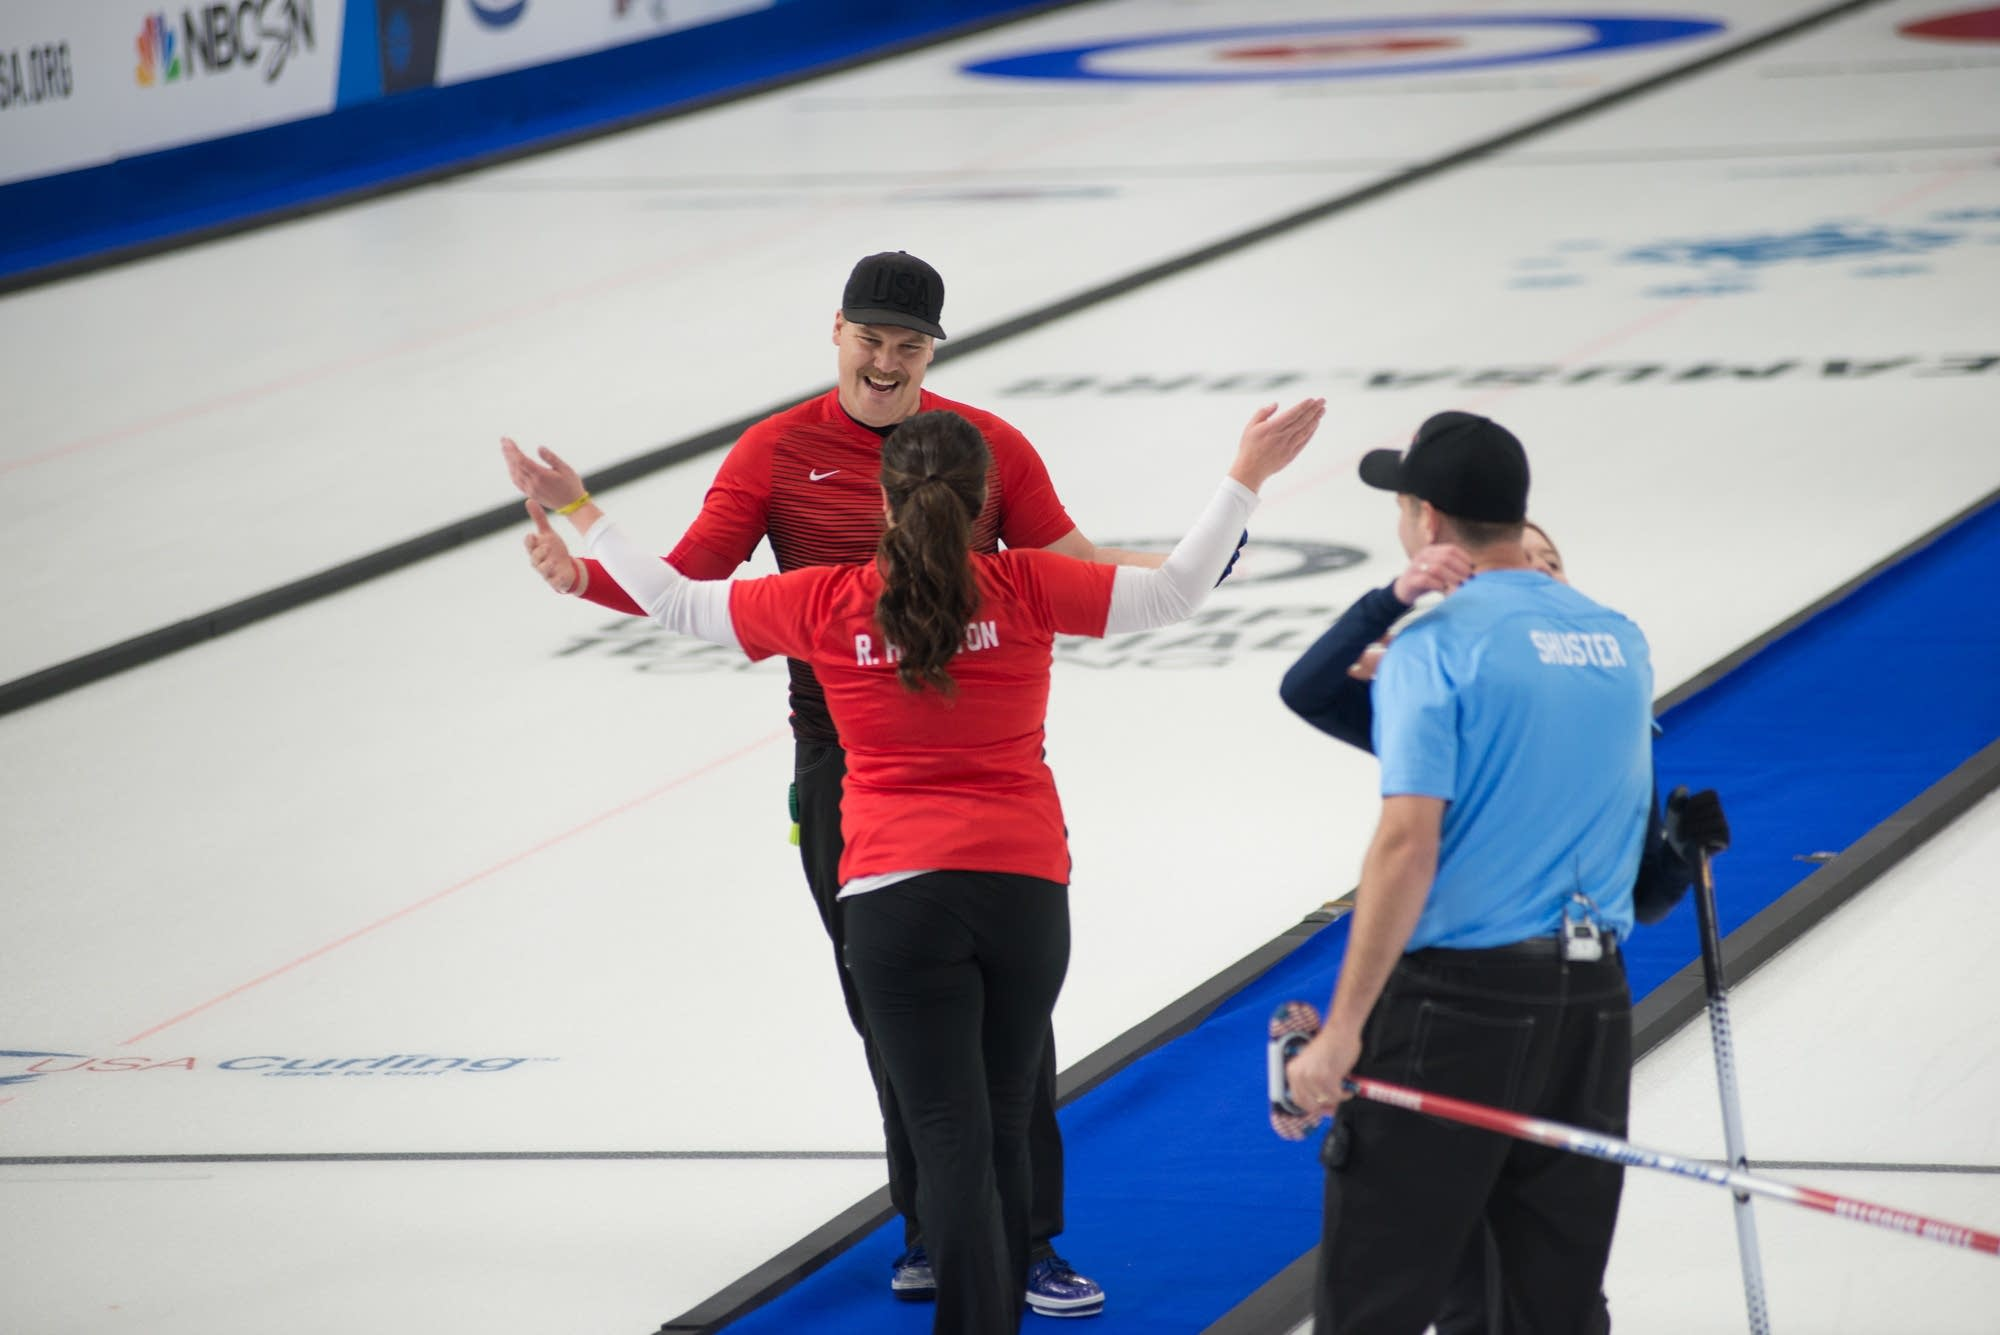 Becca and Matt Hamilton cap off a dominant year in curling with a 6-5 win.